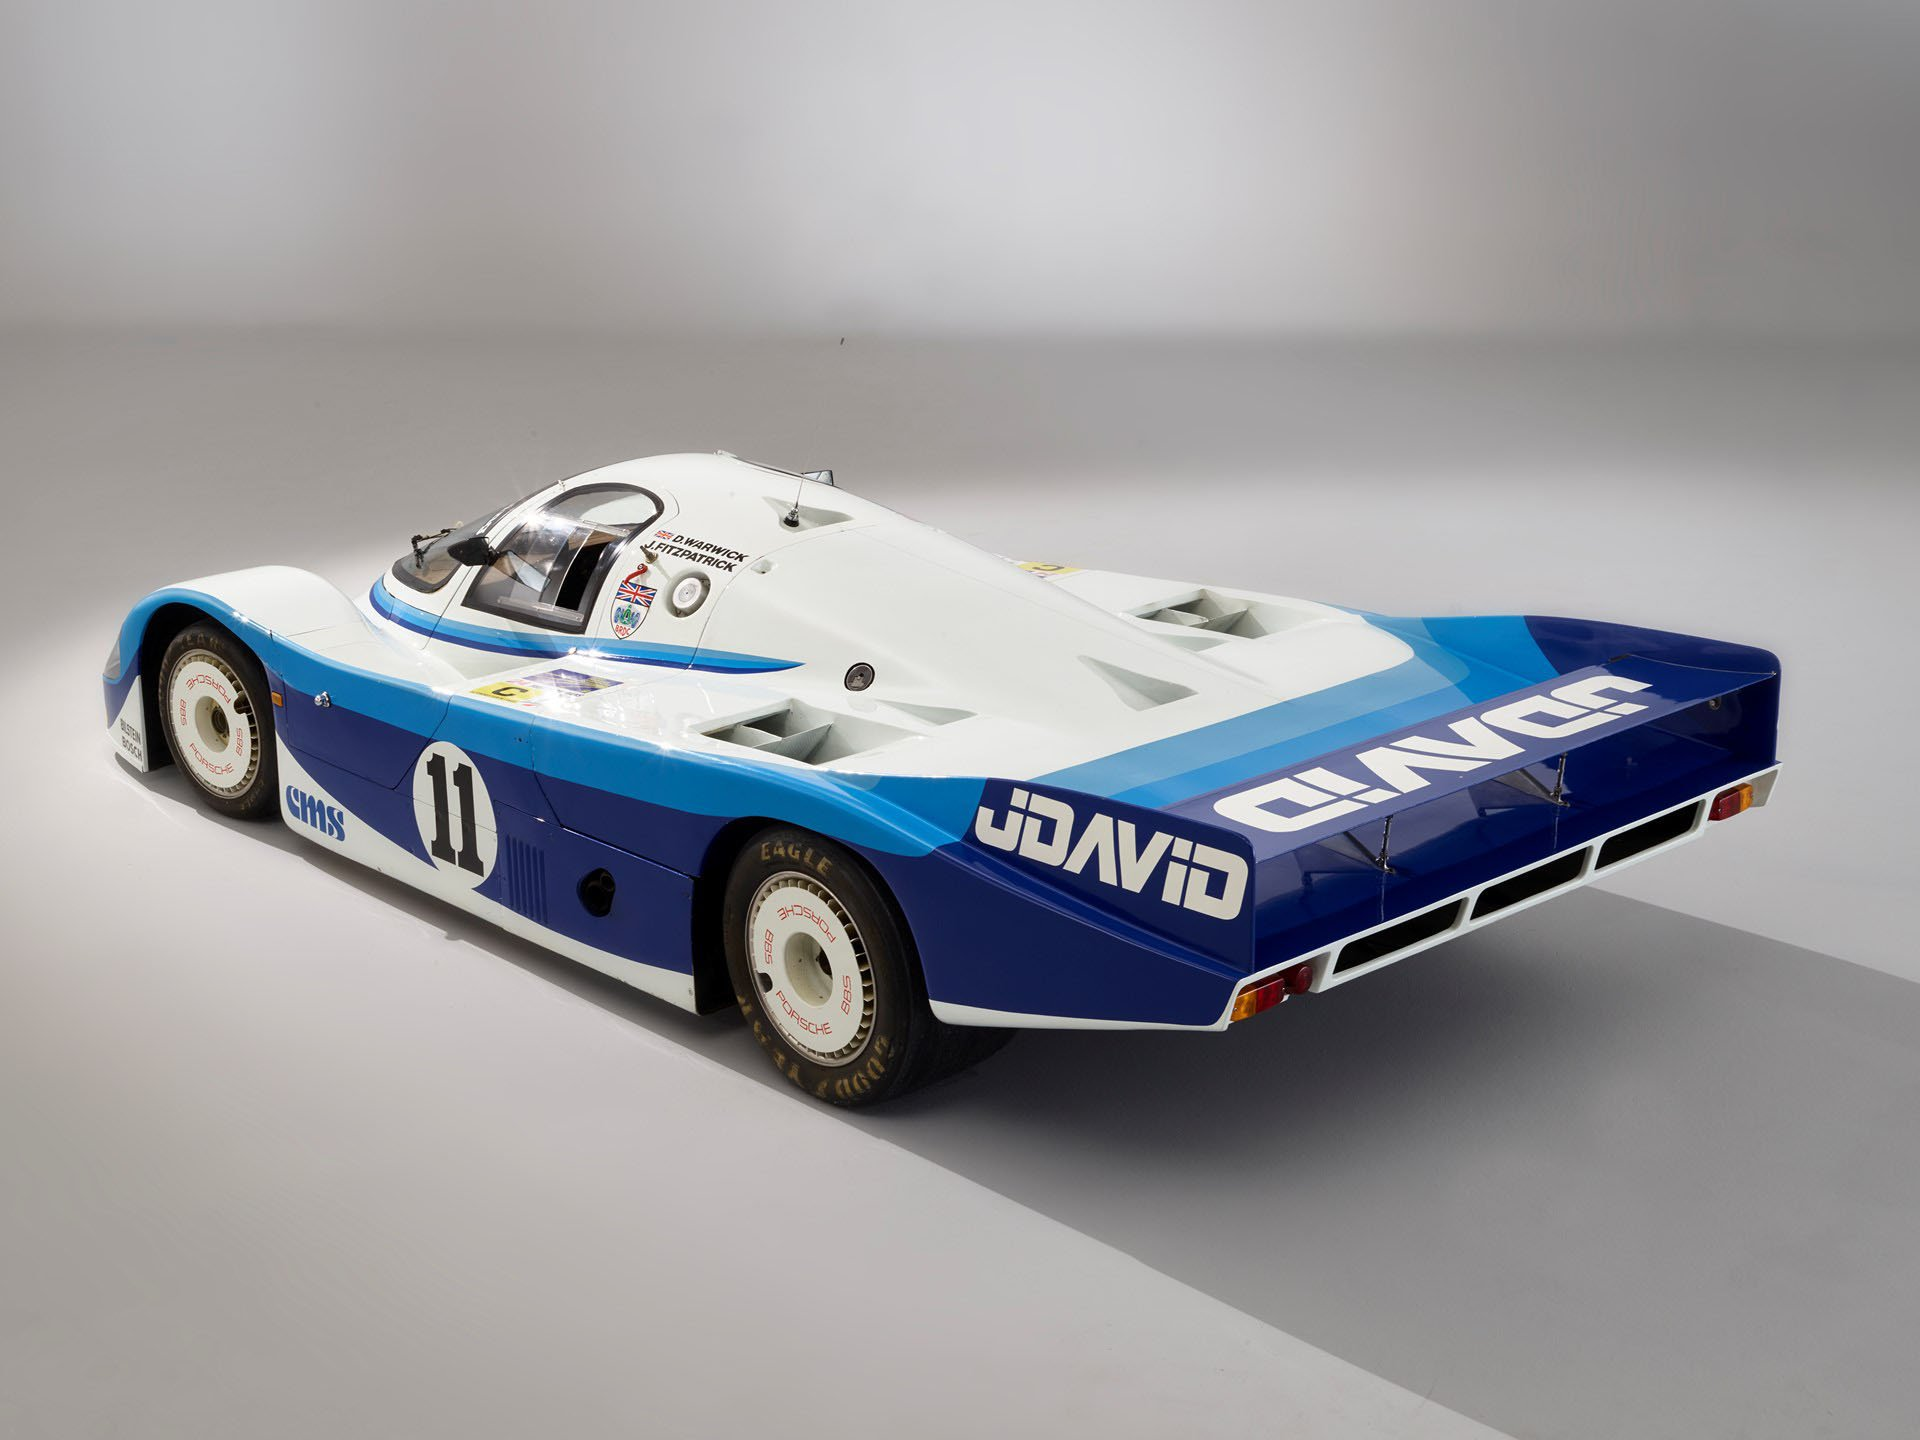 Porsche 956-110 in auction (6)